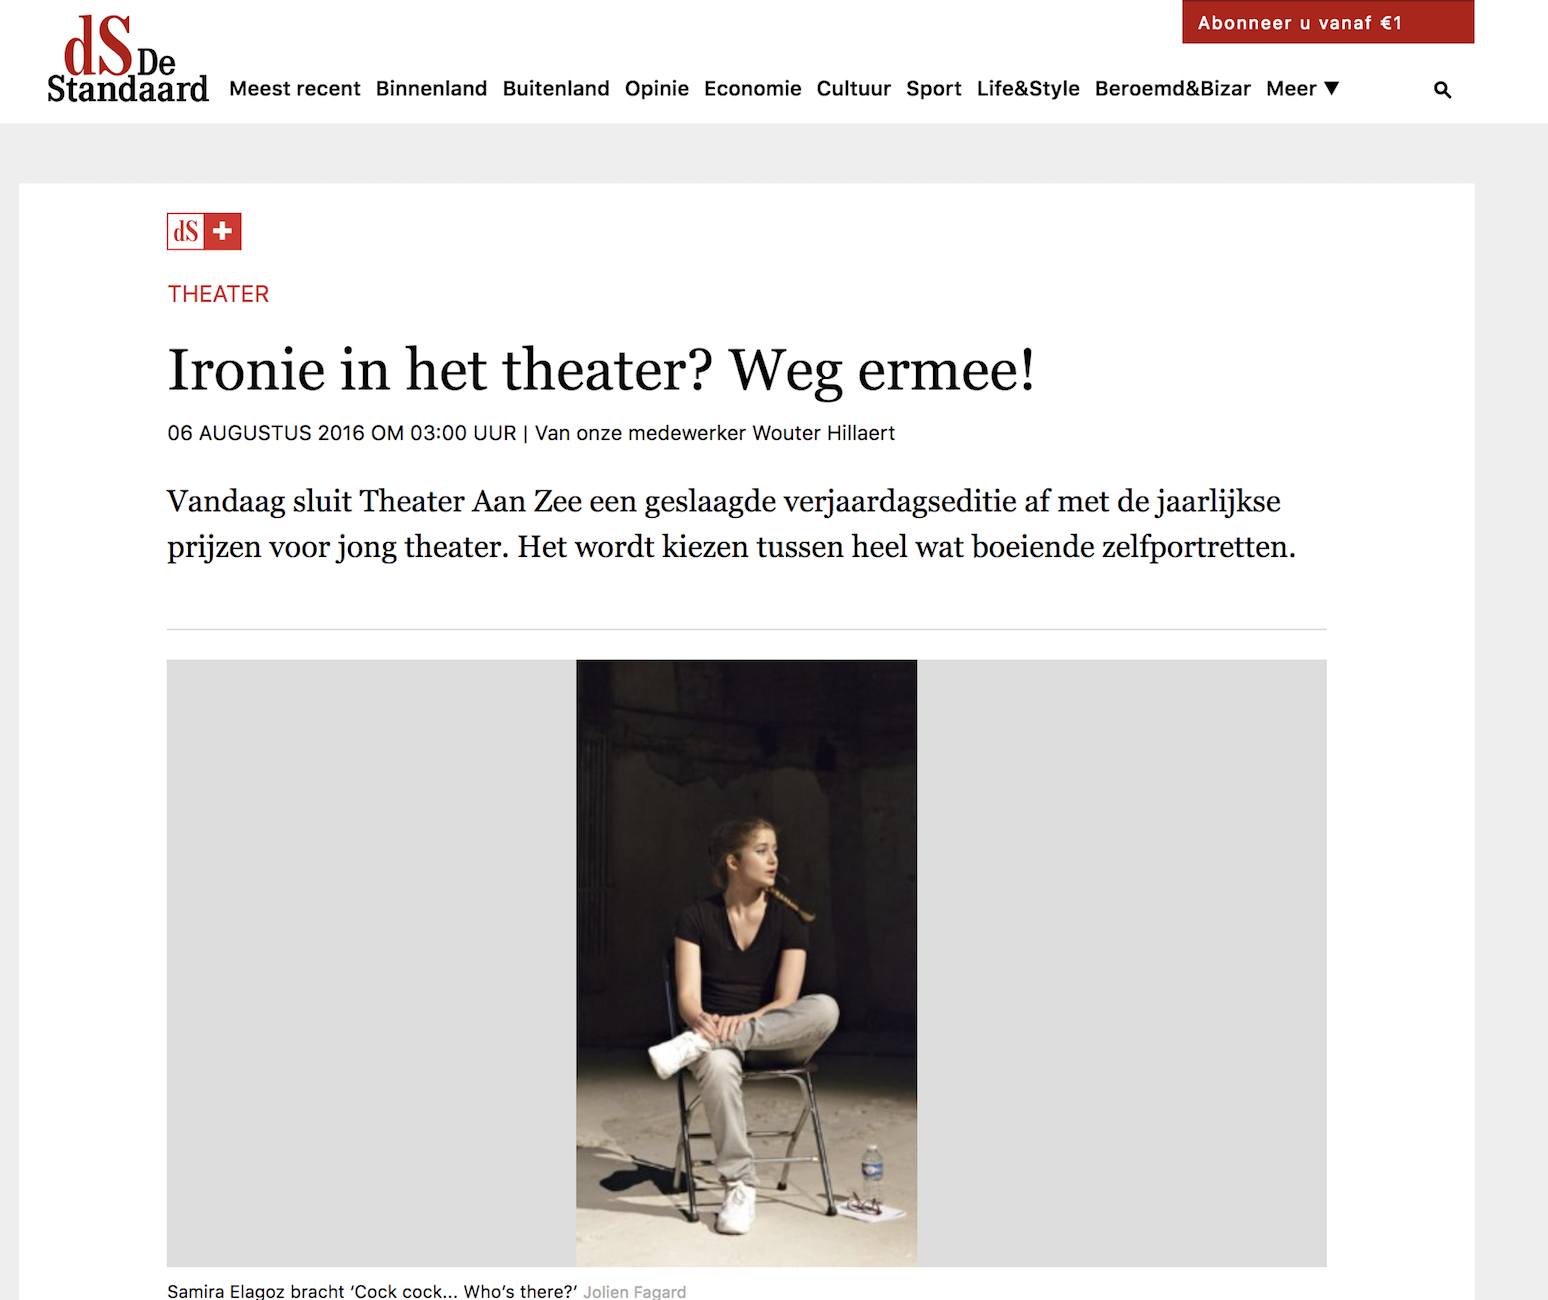 """DER STANDAARD     Review:  """"…Elagoz's self-presentation very intelligently exposes a taboo subject."""""""